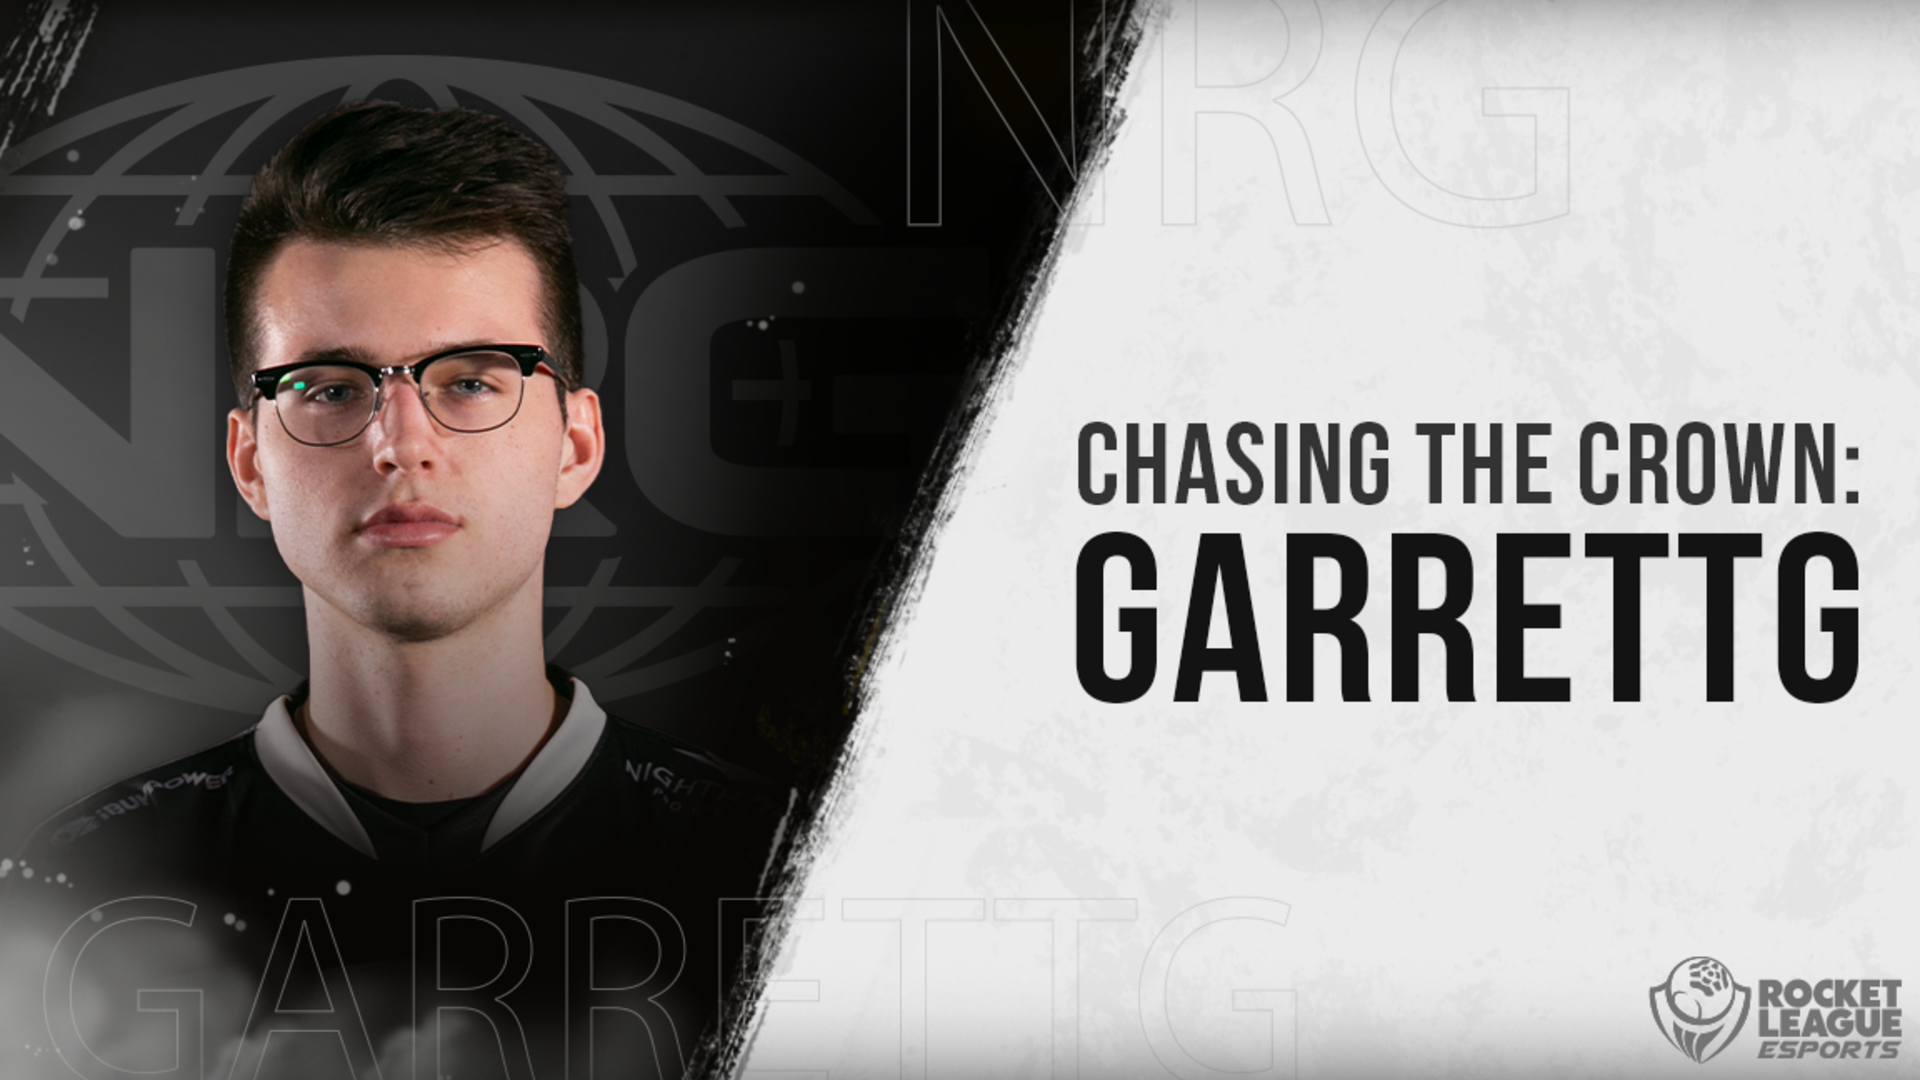 Chasing the Crown: GarrettG Image